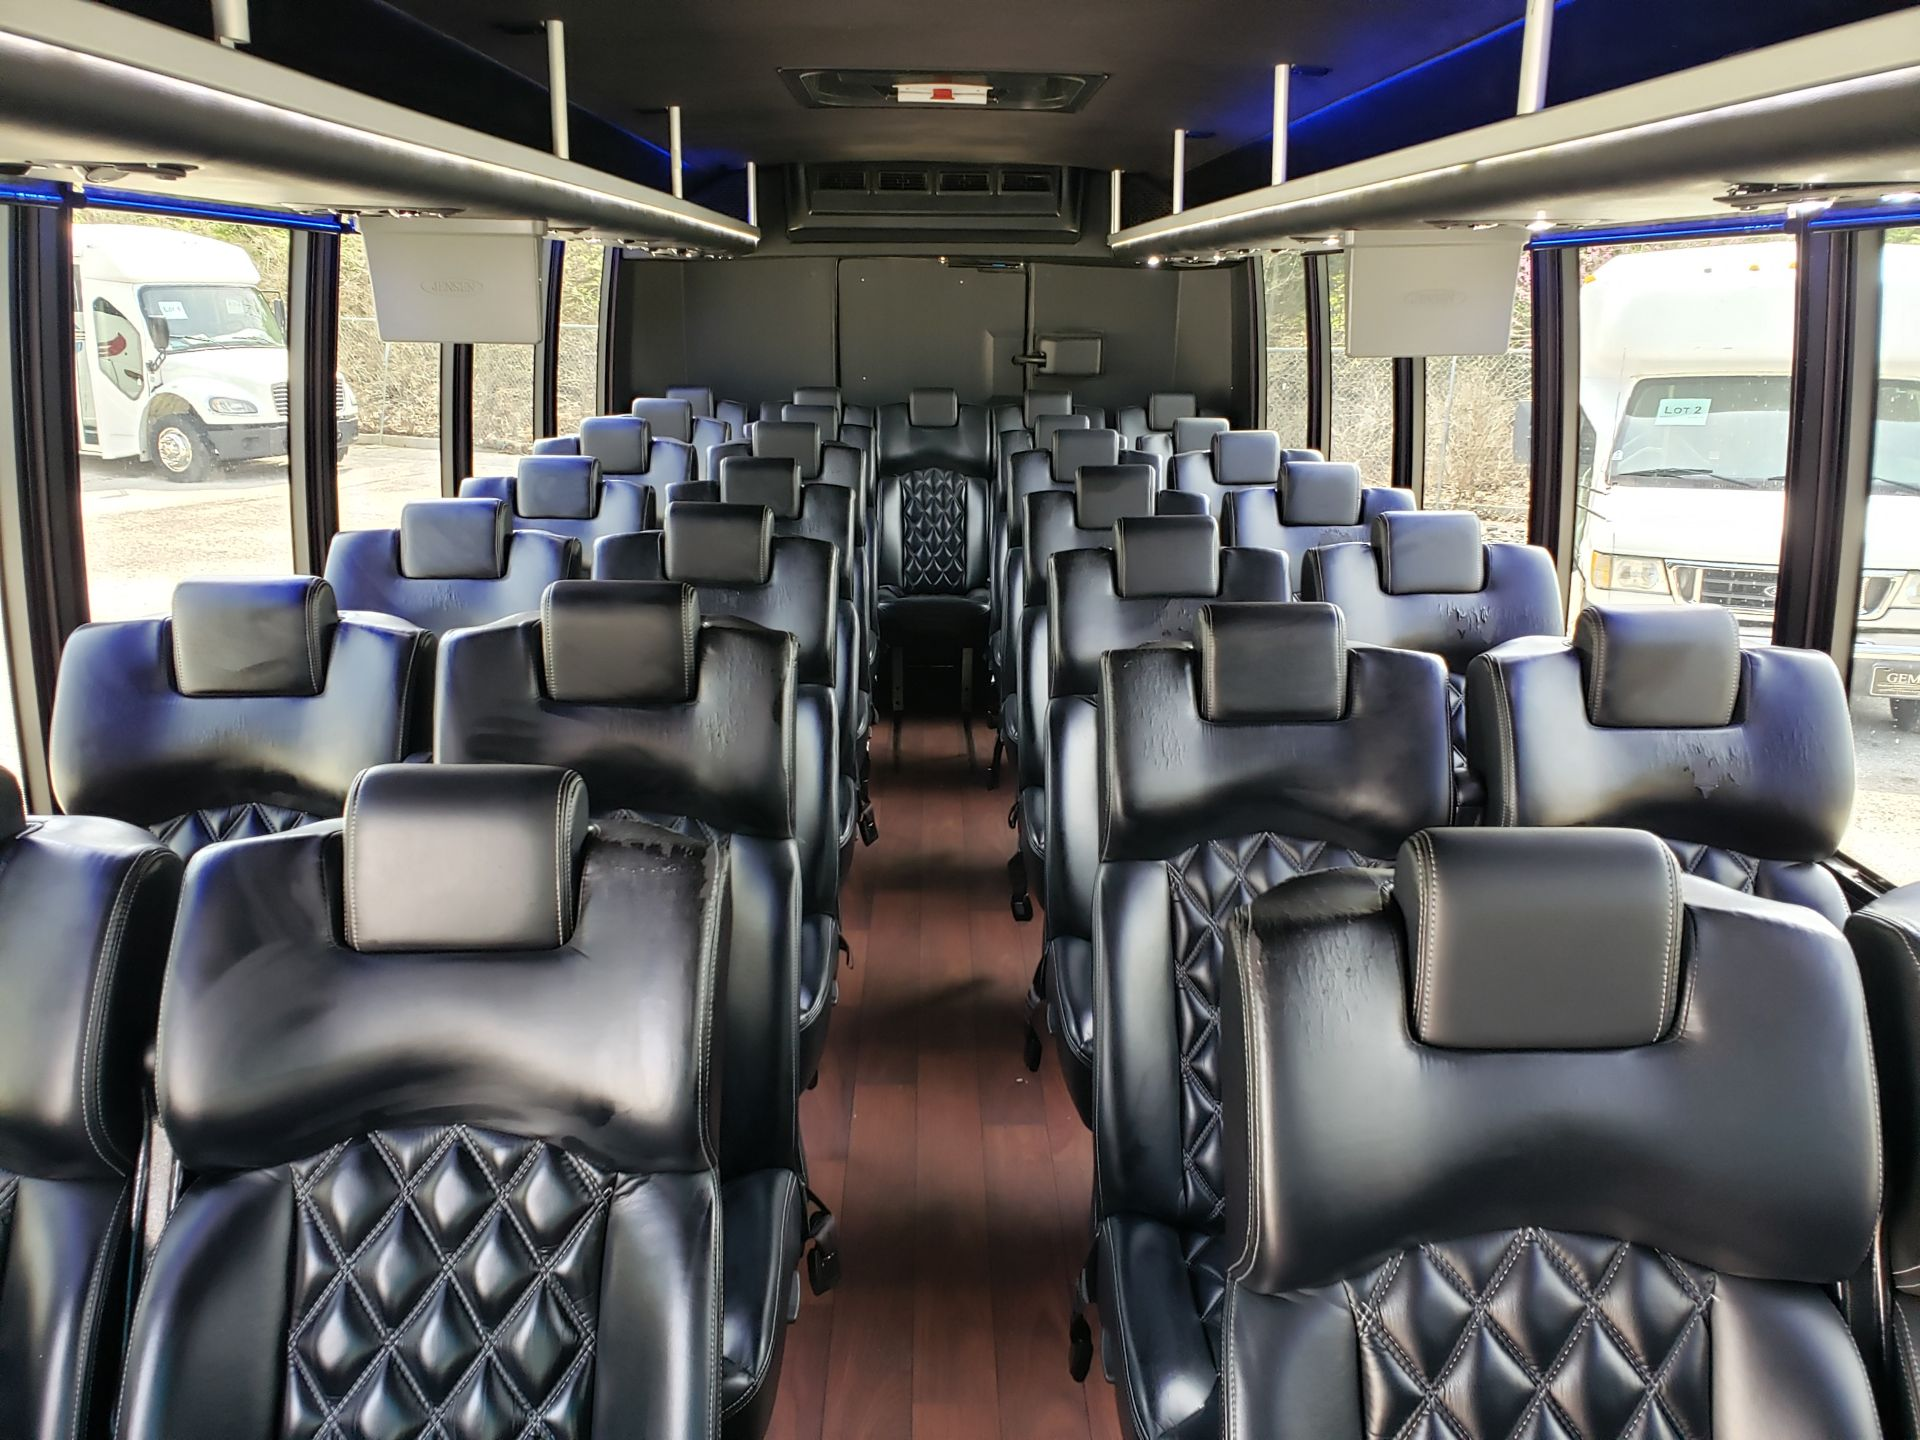 2013 Ford F550SD XL Grech Motors 33-Pass Shuttle Bus - Image 10 of 17